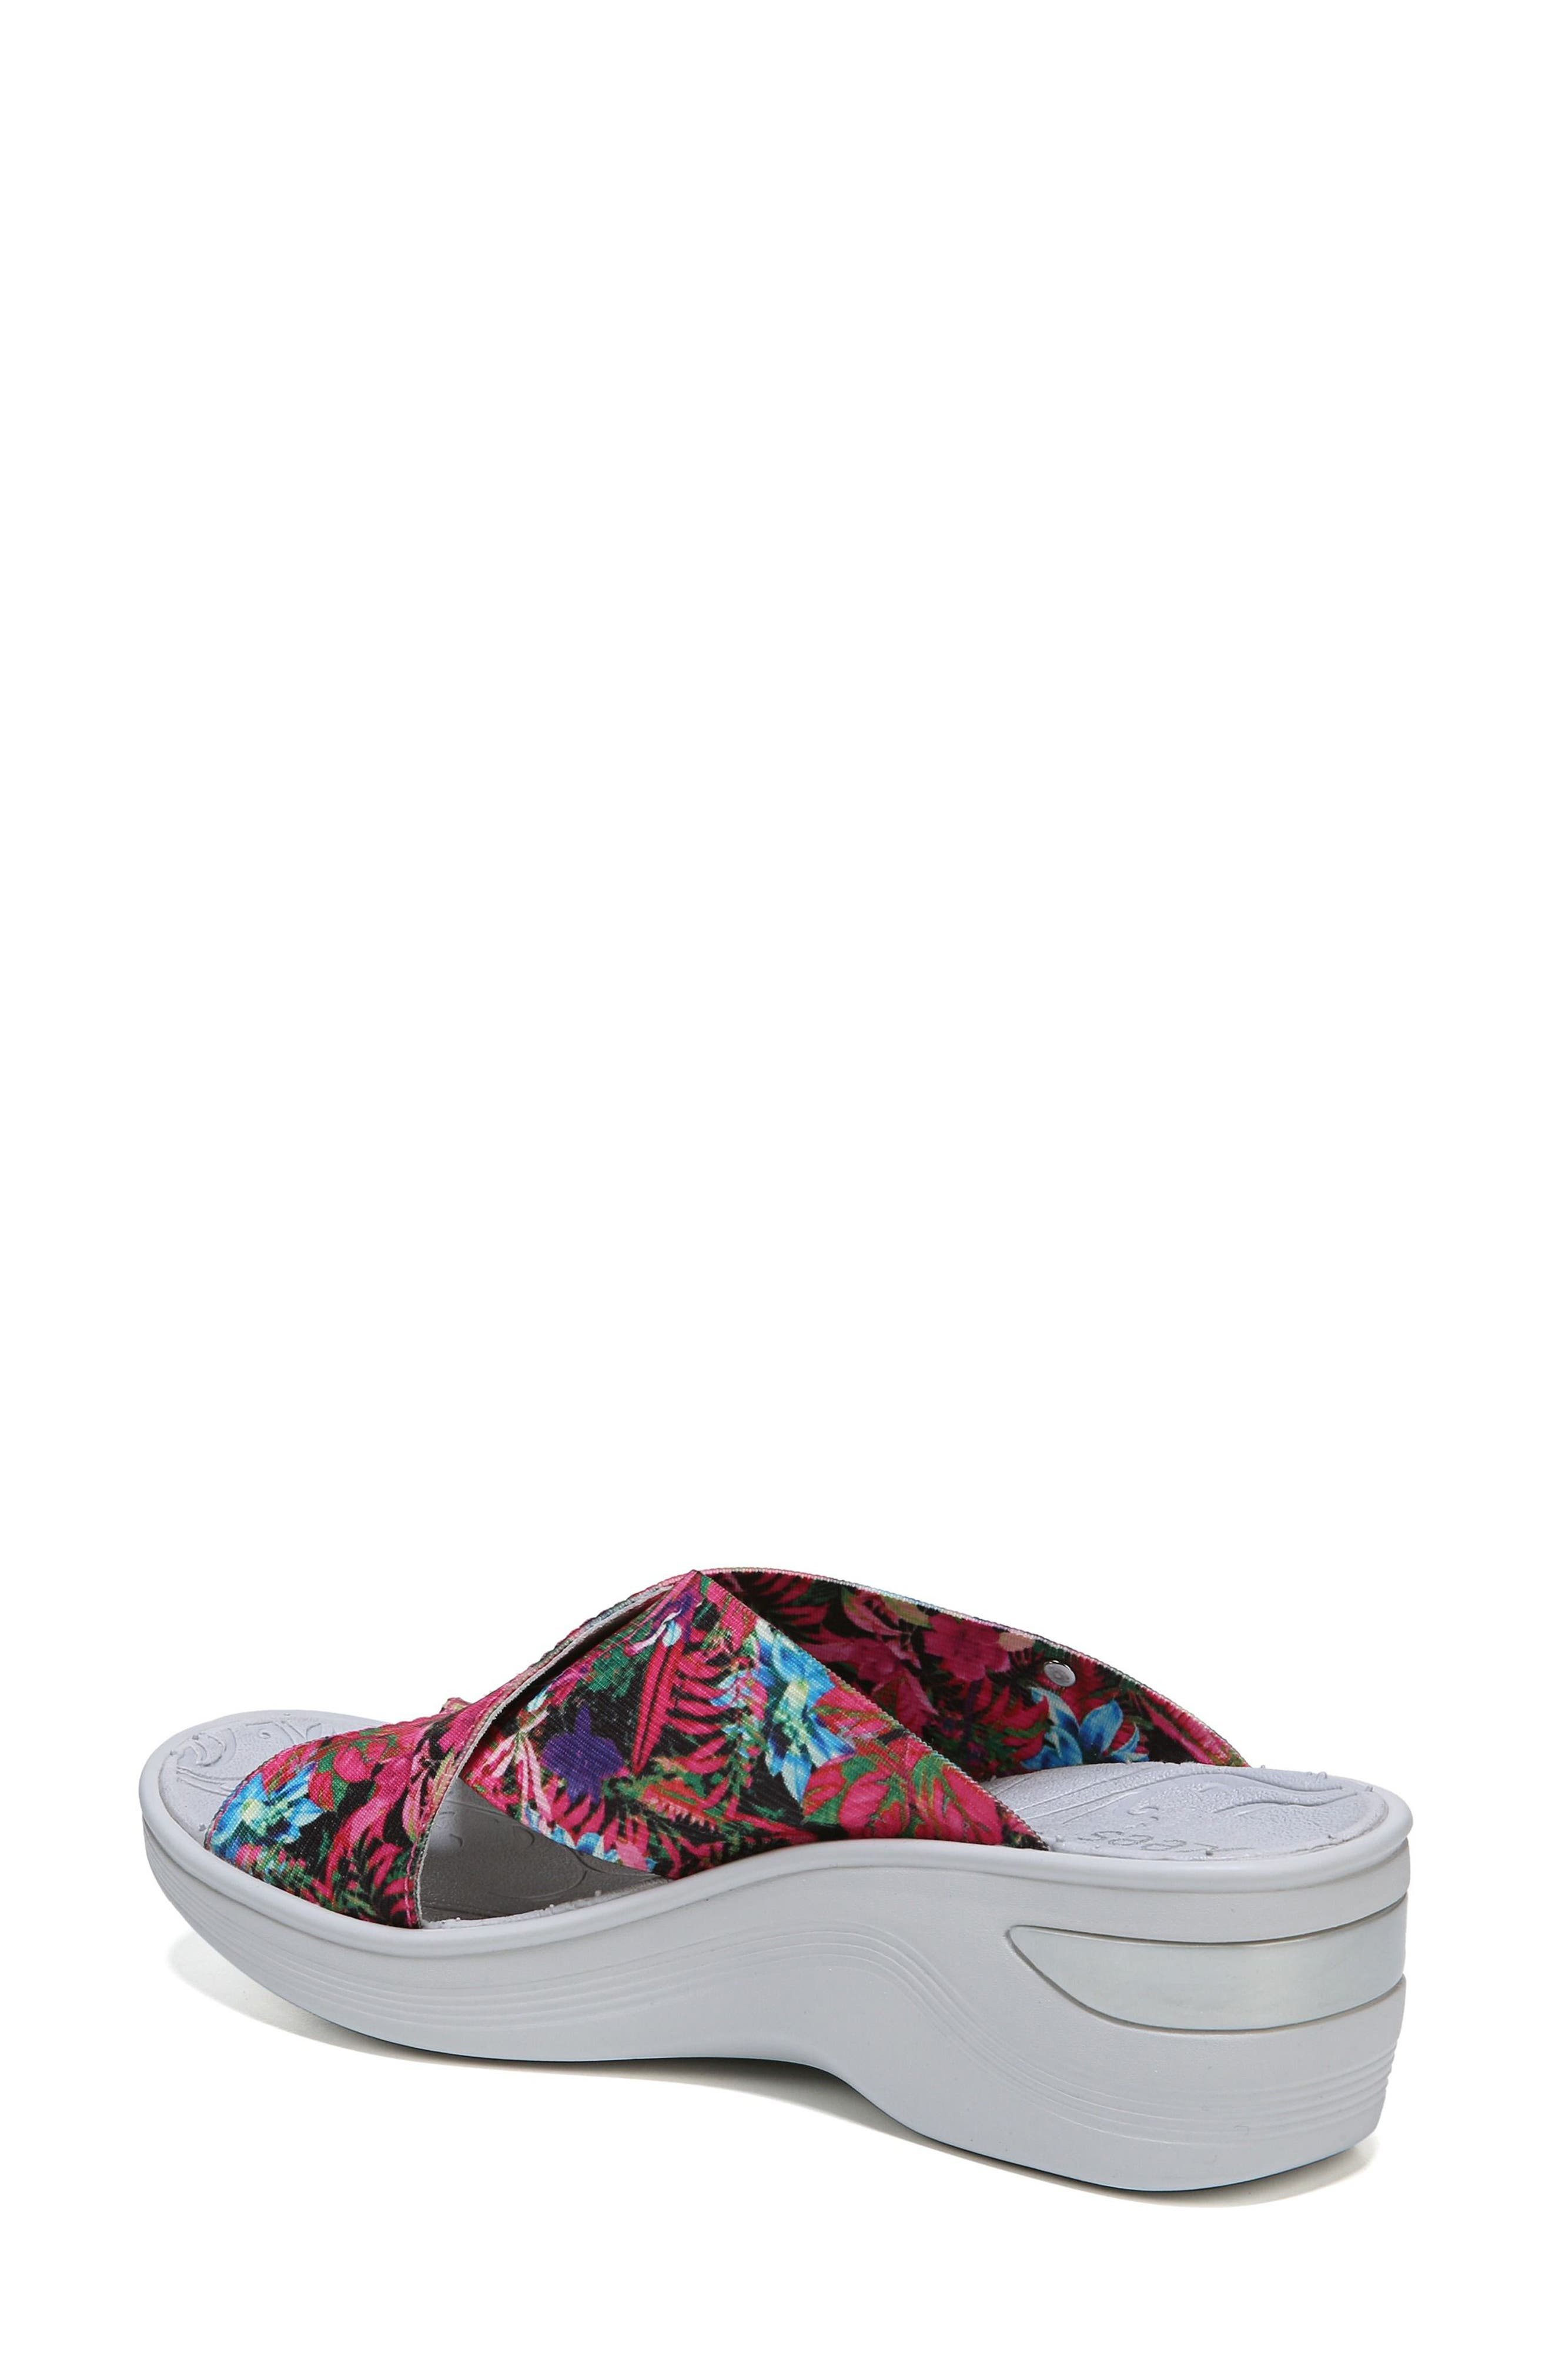 'Desire' Wedge Sandal,                             Alternate thumbnail 2, color,                             Pink Floral Fabric